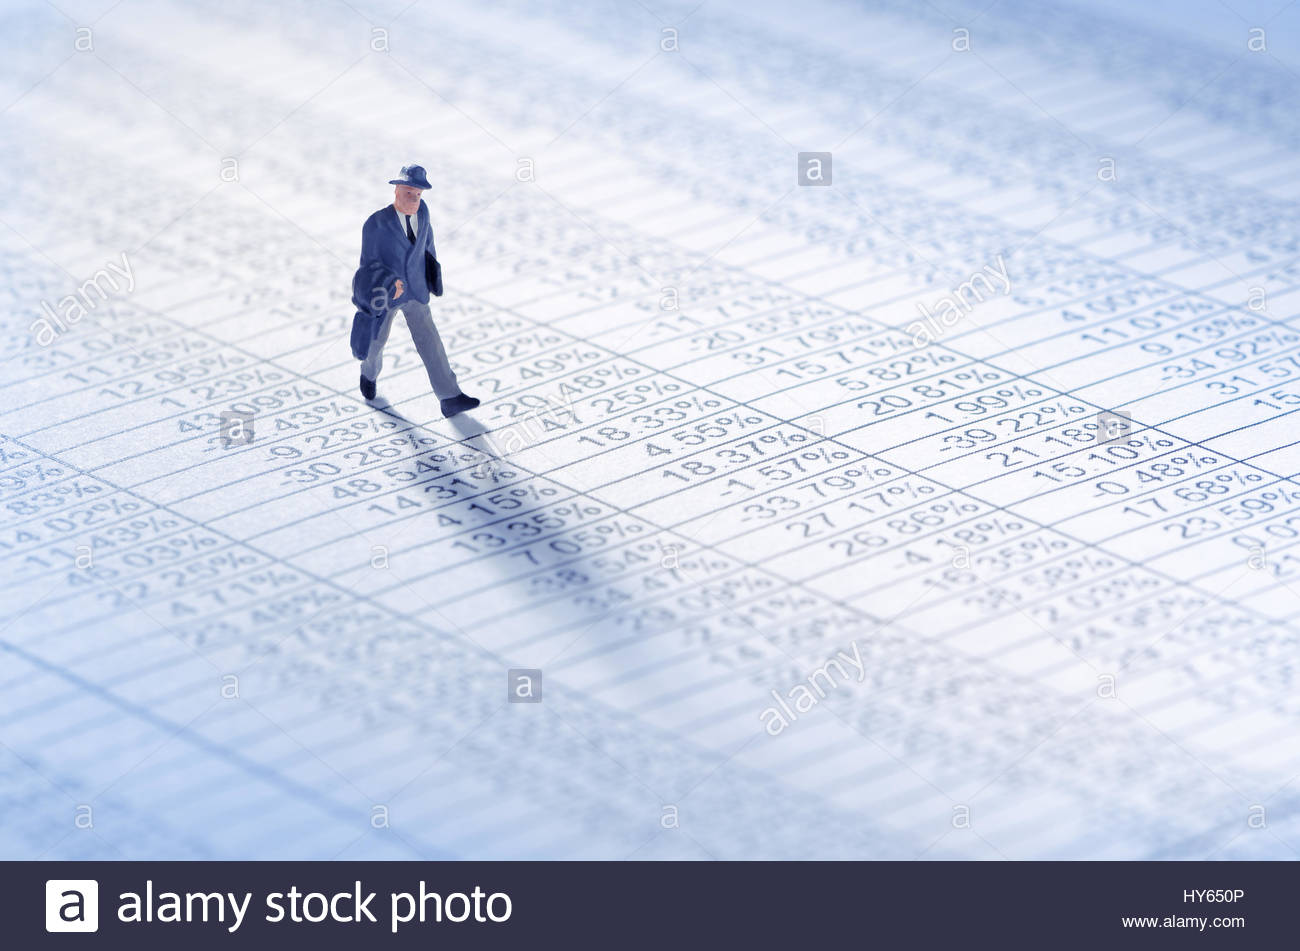 Businessman playing the stock market - Stock Image